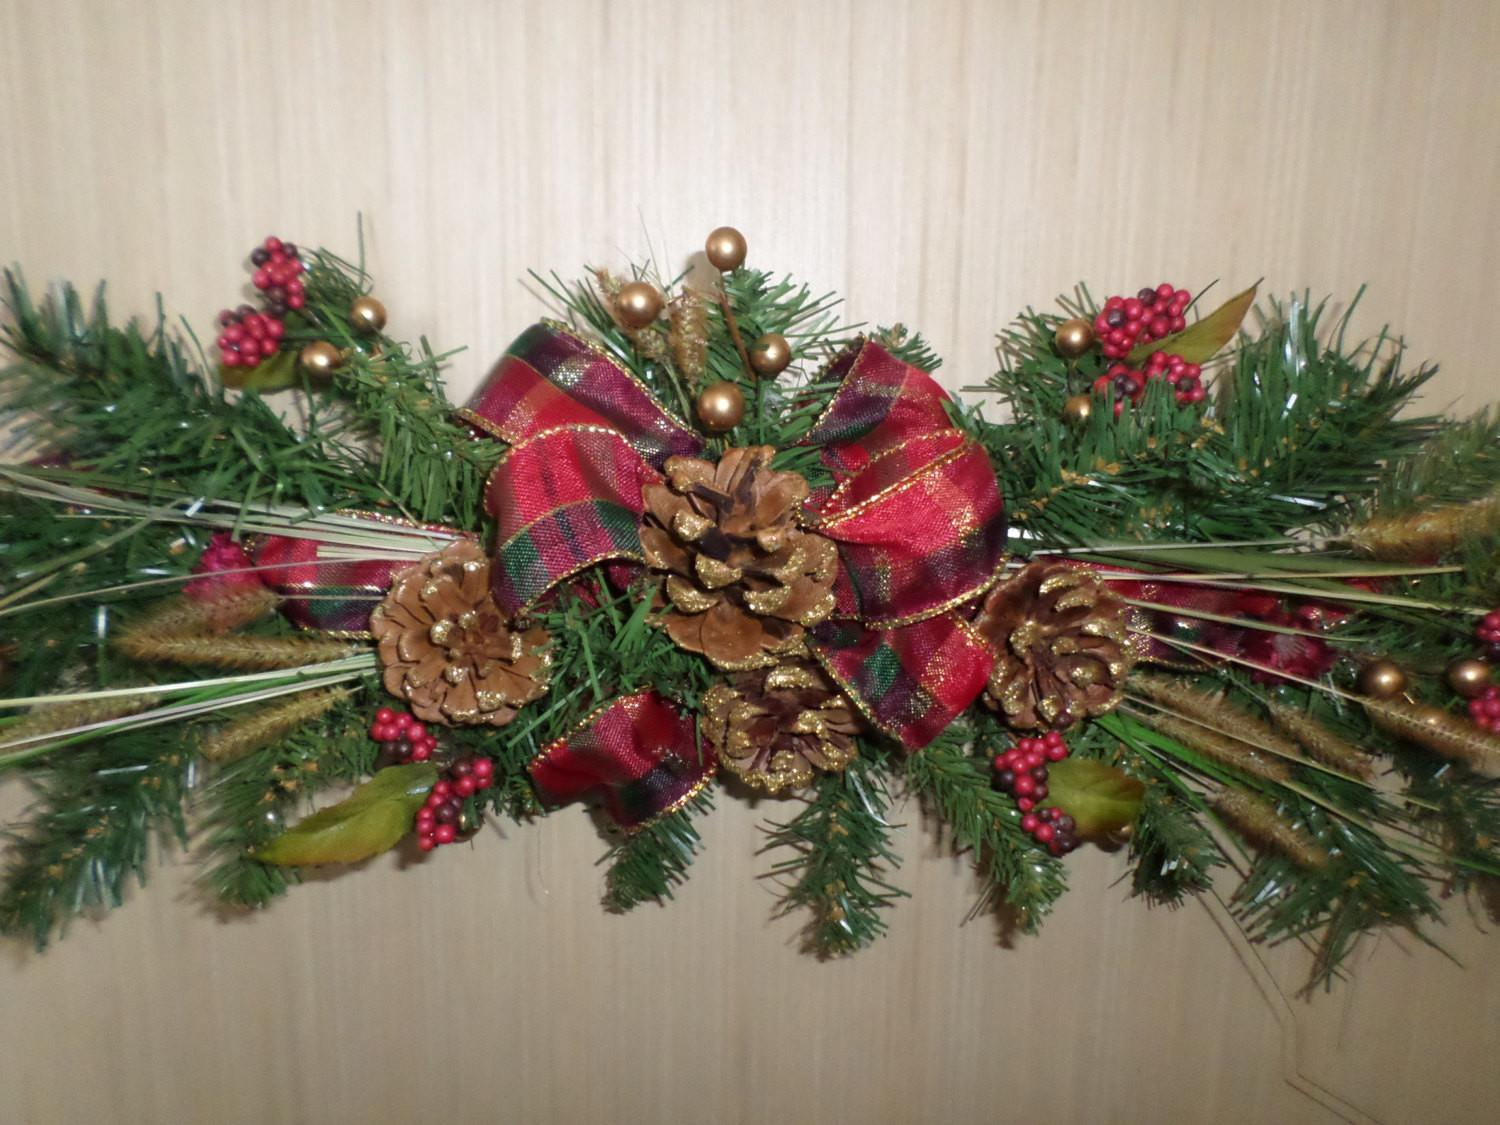 Plaid Ribbon Pinecone Swag Dried Floral Accents